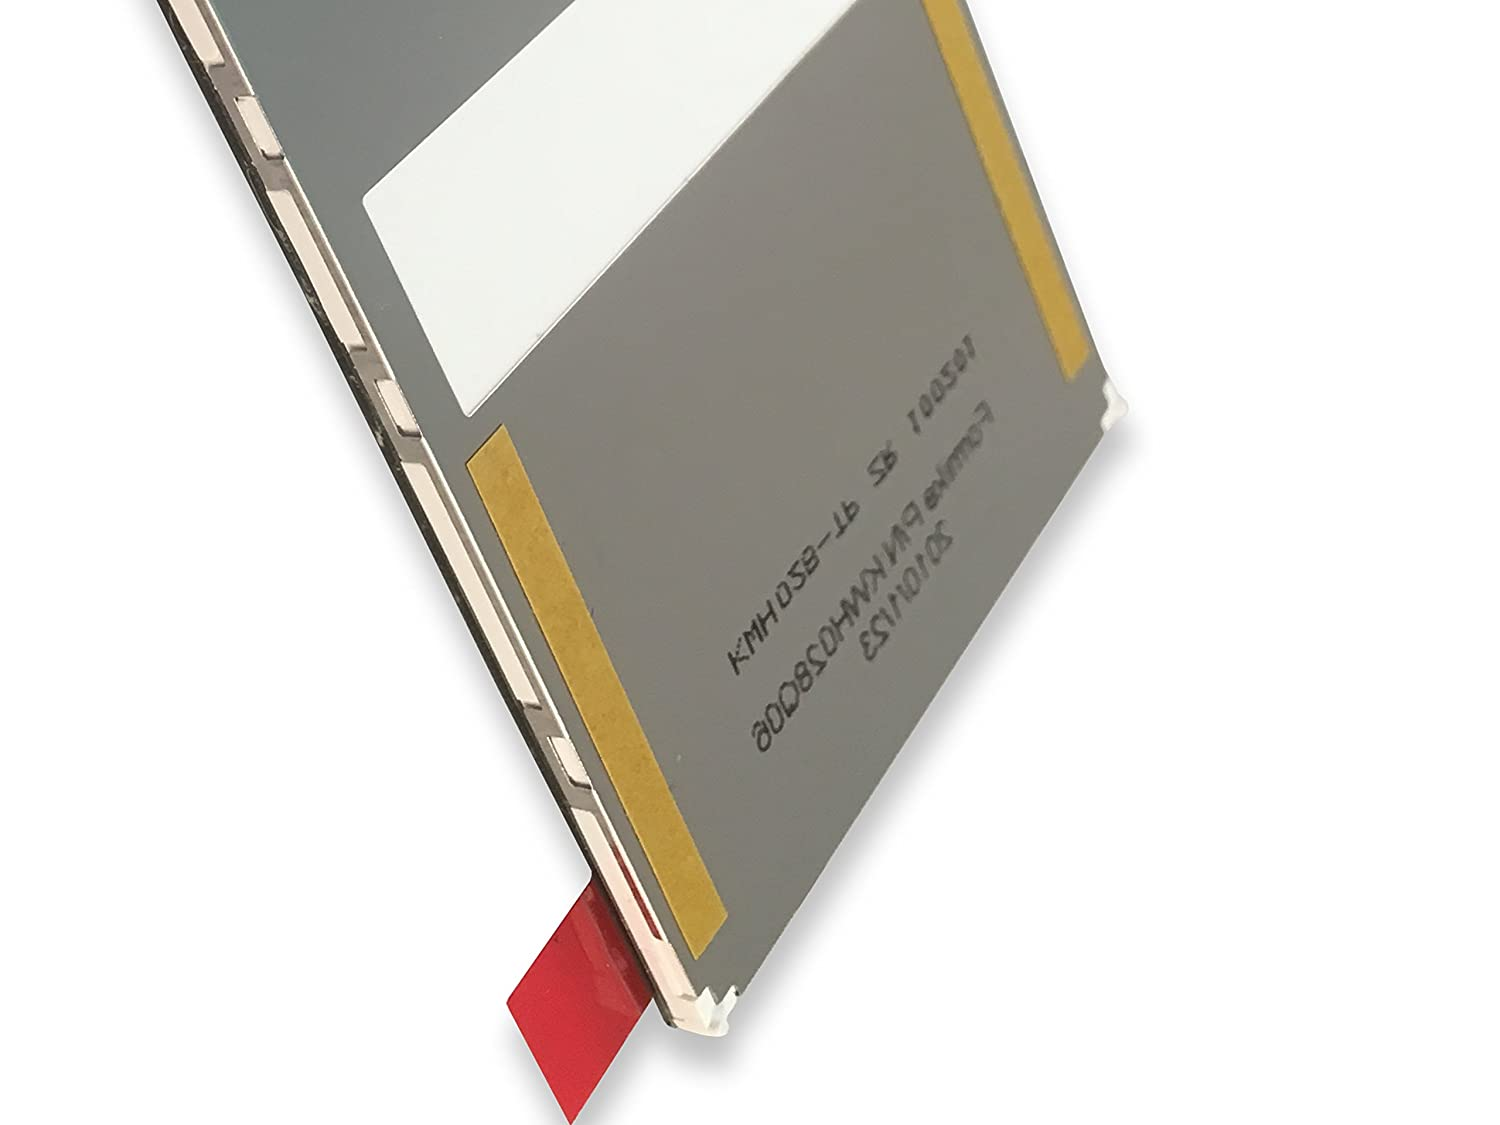 """KWH028Q06-F02 240x320 Pixels ― RoHS compliant 2.8/"""" TFT LCD Display with Touch Panel"""